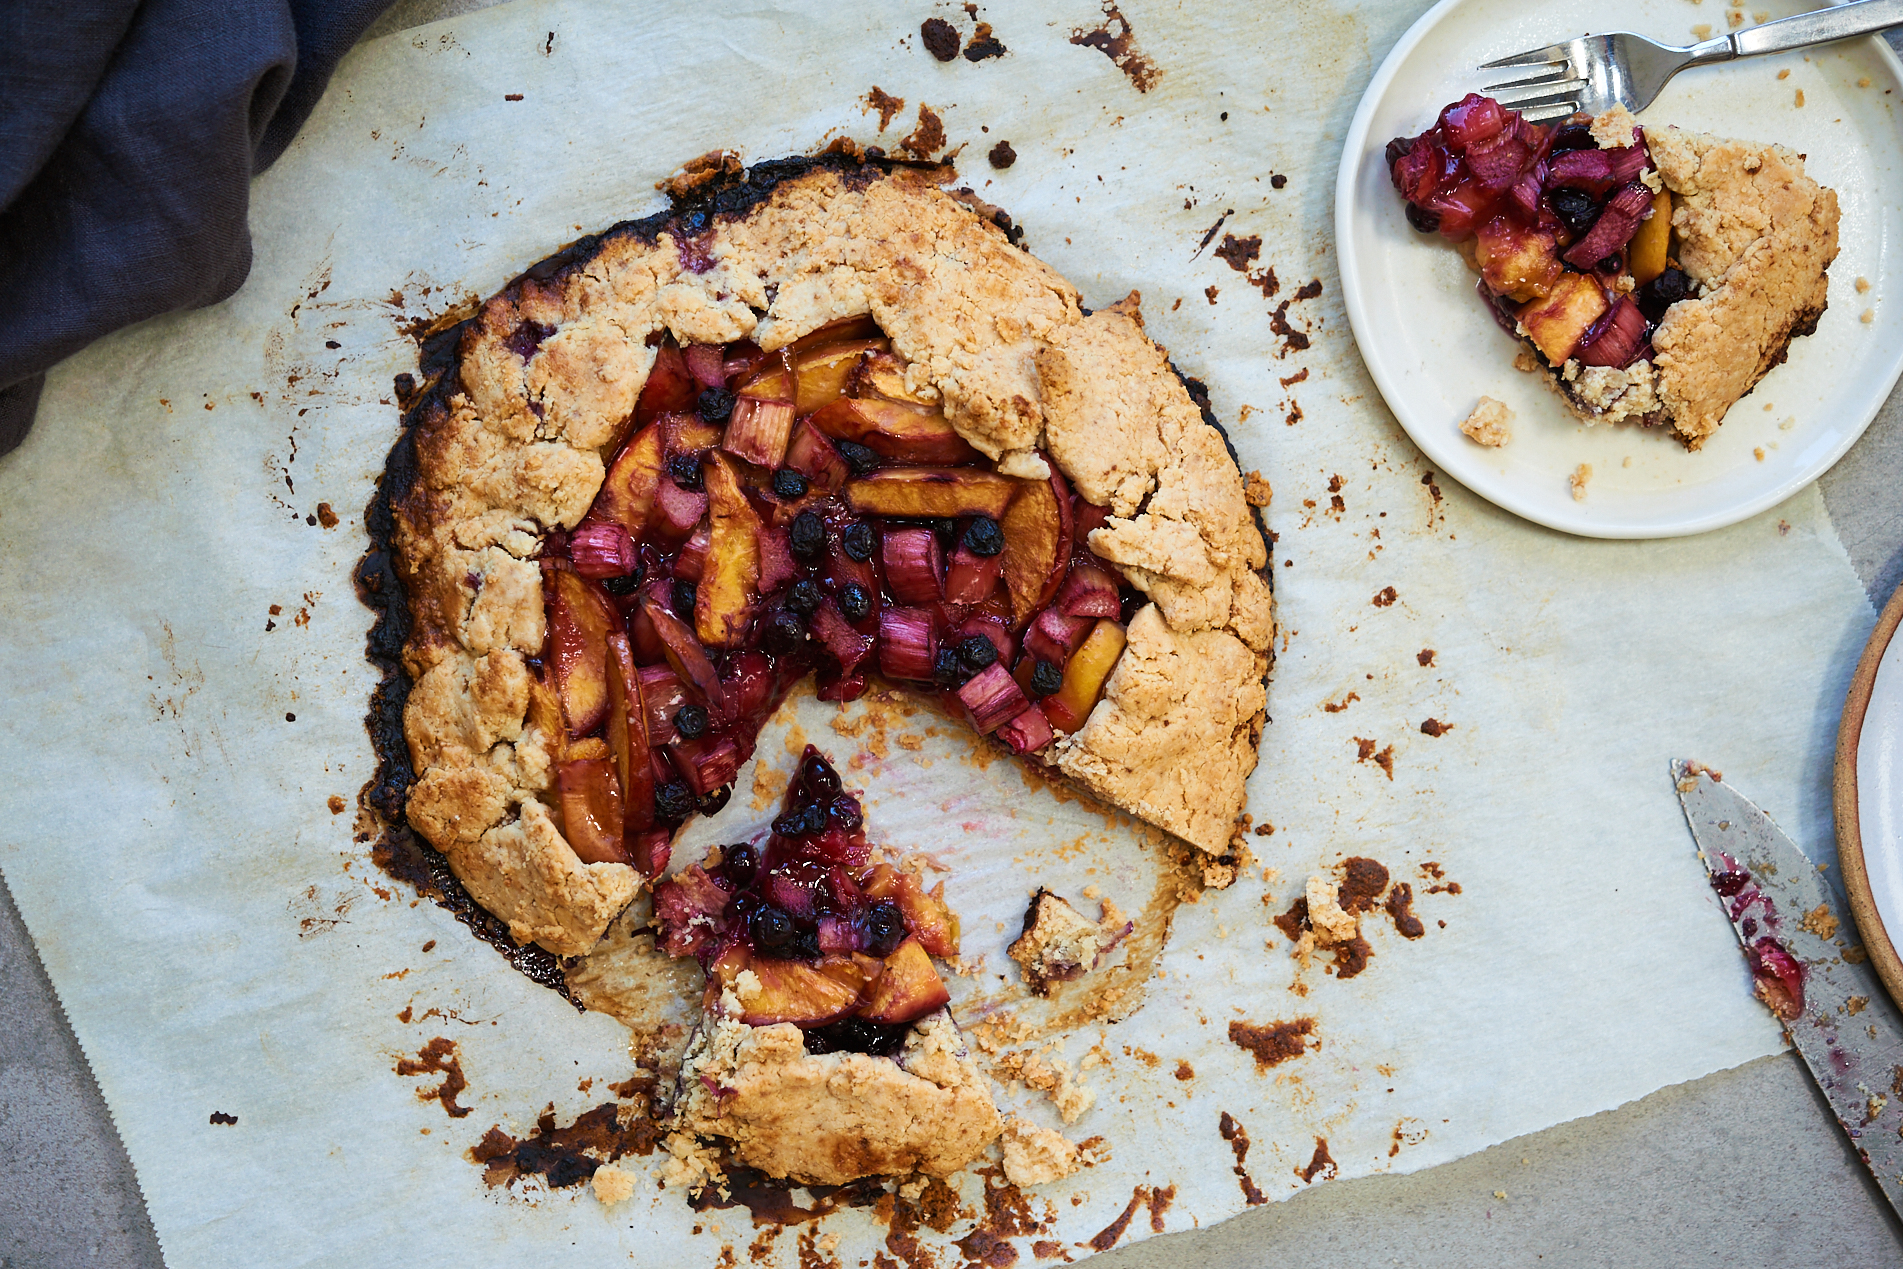 This gluten free and paleo galette is filled with rhubarb, peaches and blueberries. It is sugar free and sweetened with coconut sugar and uses almond flour and tapioca.